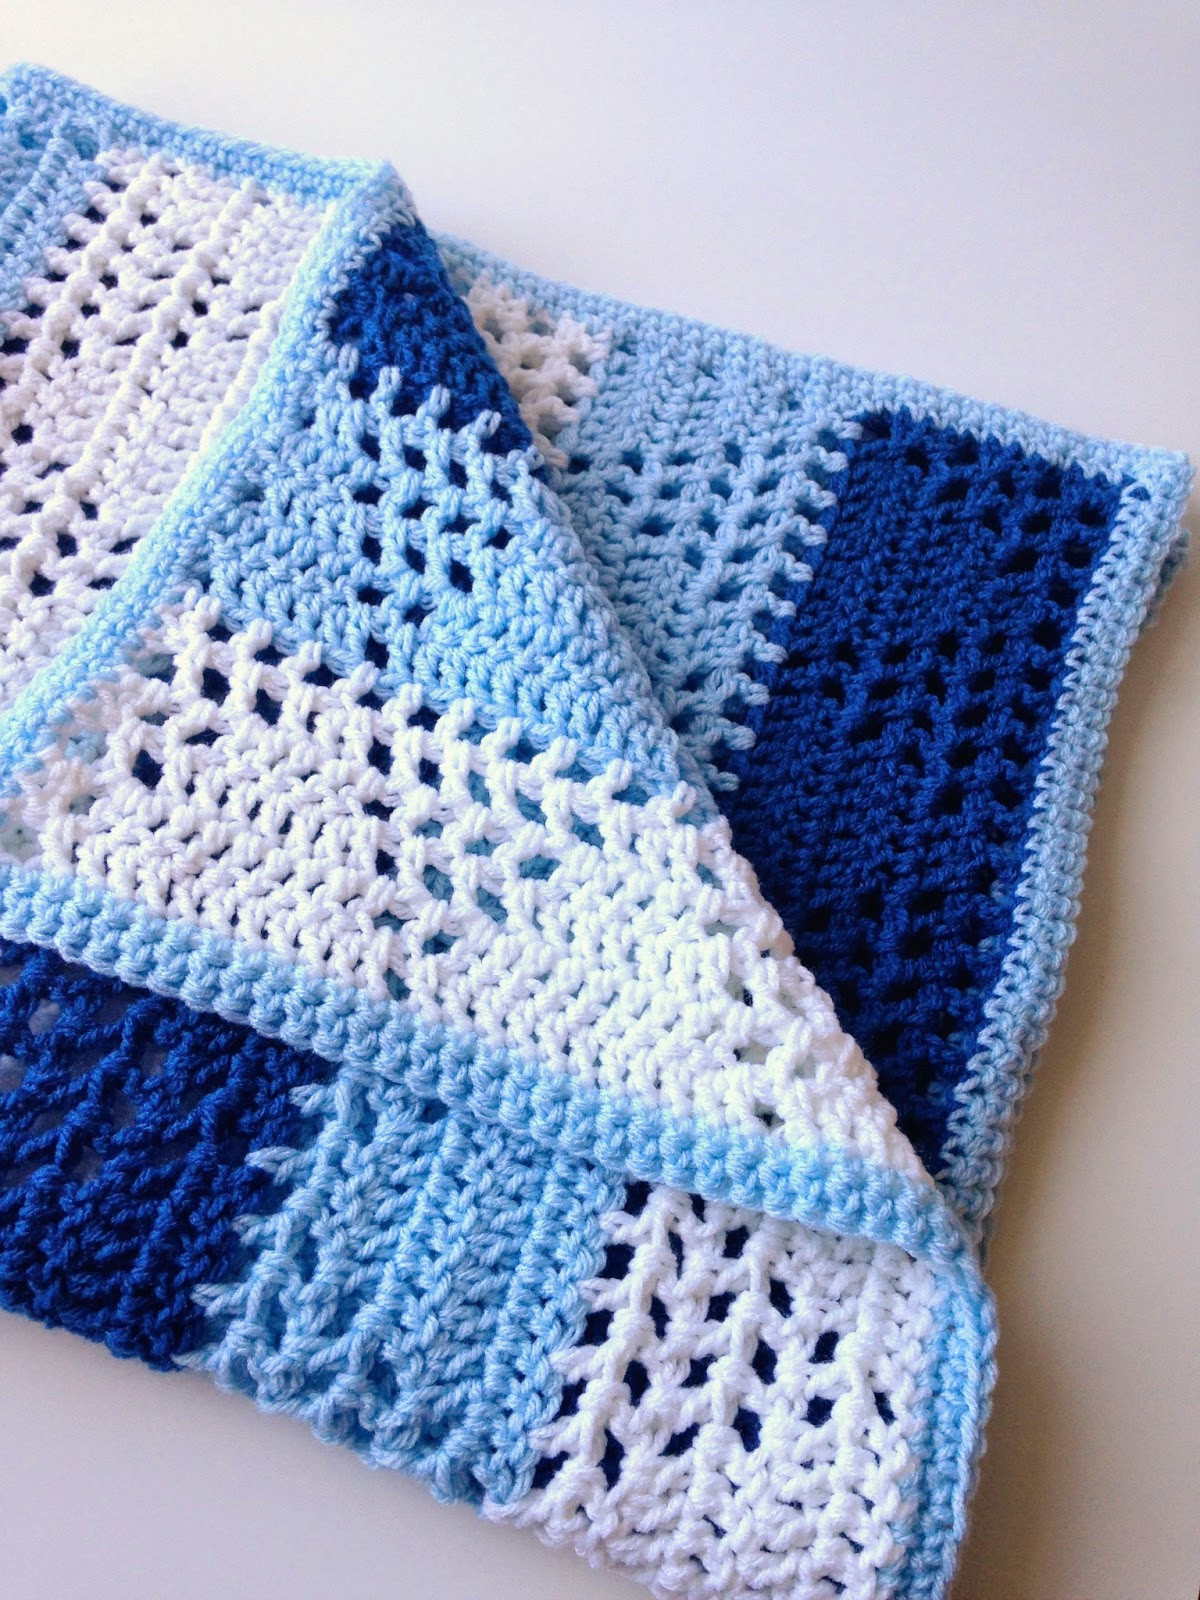 Baby Boy Crochet Blanket Patterns Awesome 5 Little Monsters Triangles & Stripes Baby Blanket Of Baby Boy Crochet Blanket Patterns Elegant Fiber Flux Beautiful Blankets 30 Free Crochet Blanket